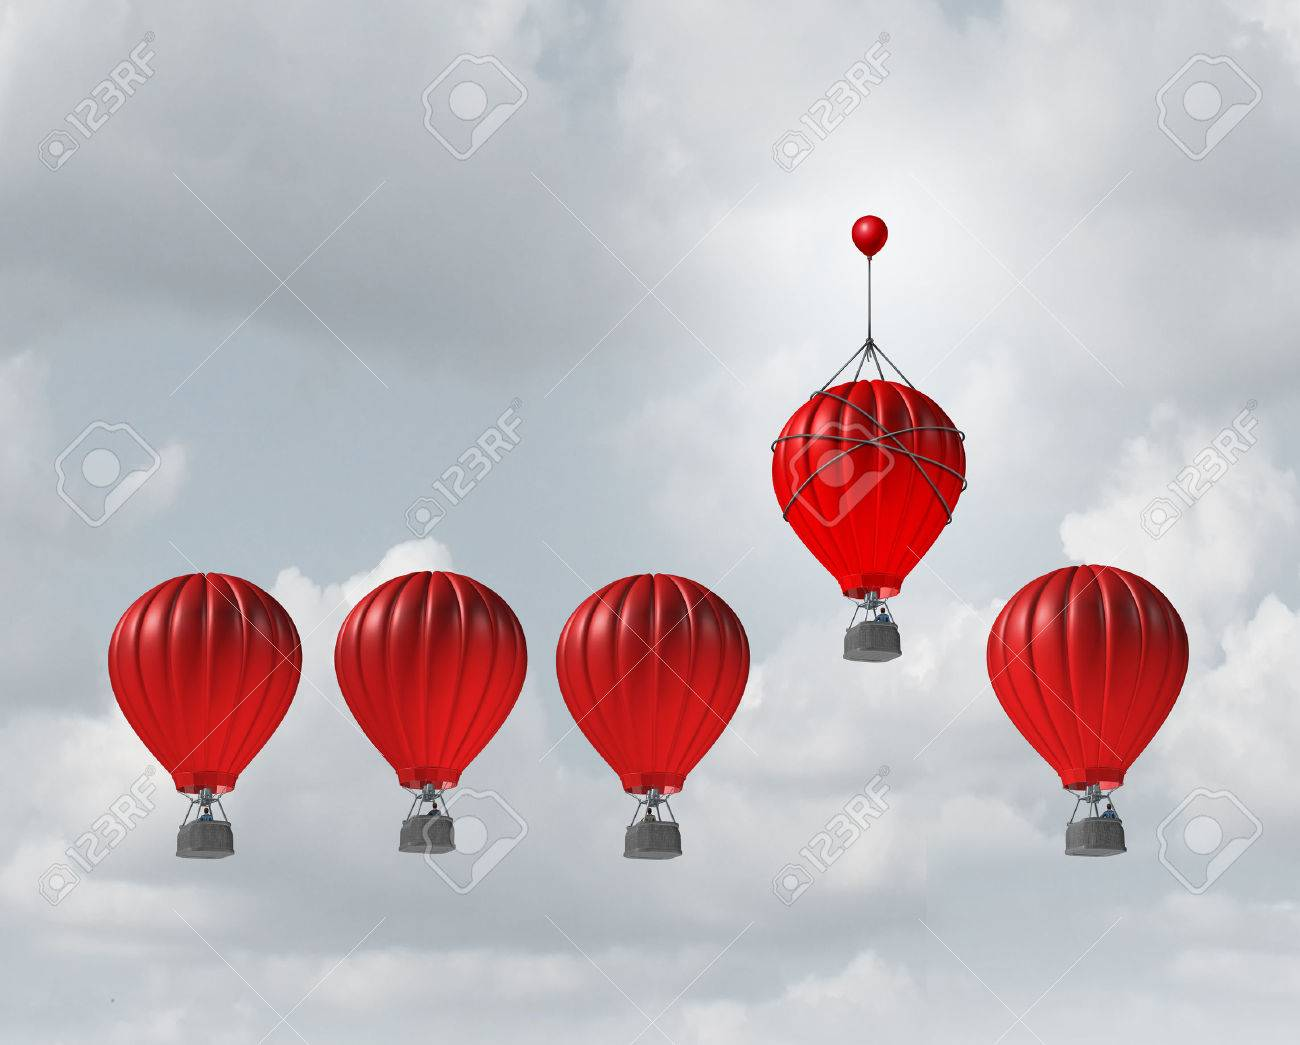 Competitive edge and business advantage concept as a group of hot air balloons racing to the top but an individualleader with a small balloon attached giving the winning competitor an extra boost to win the competition. - 52657727